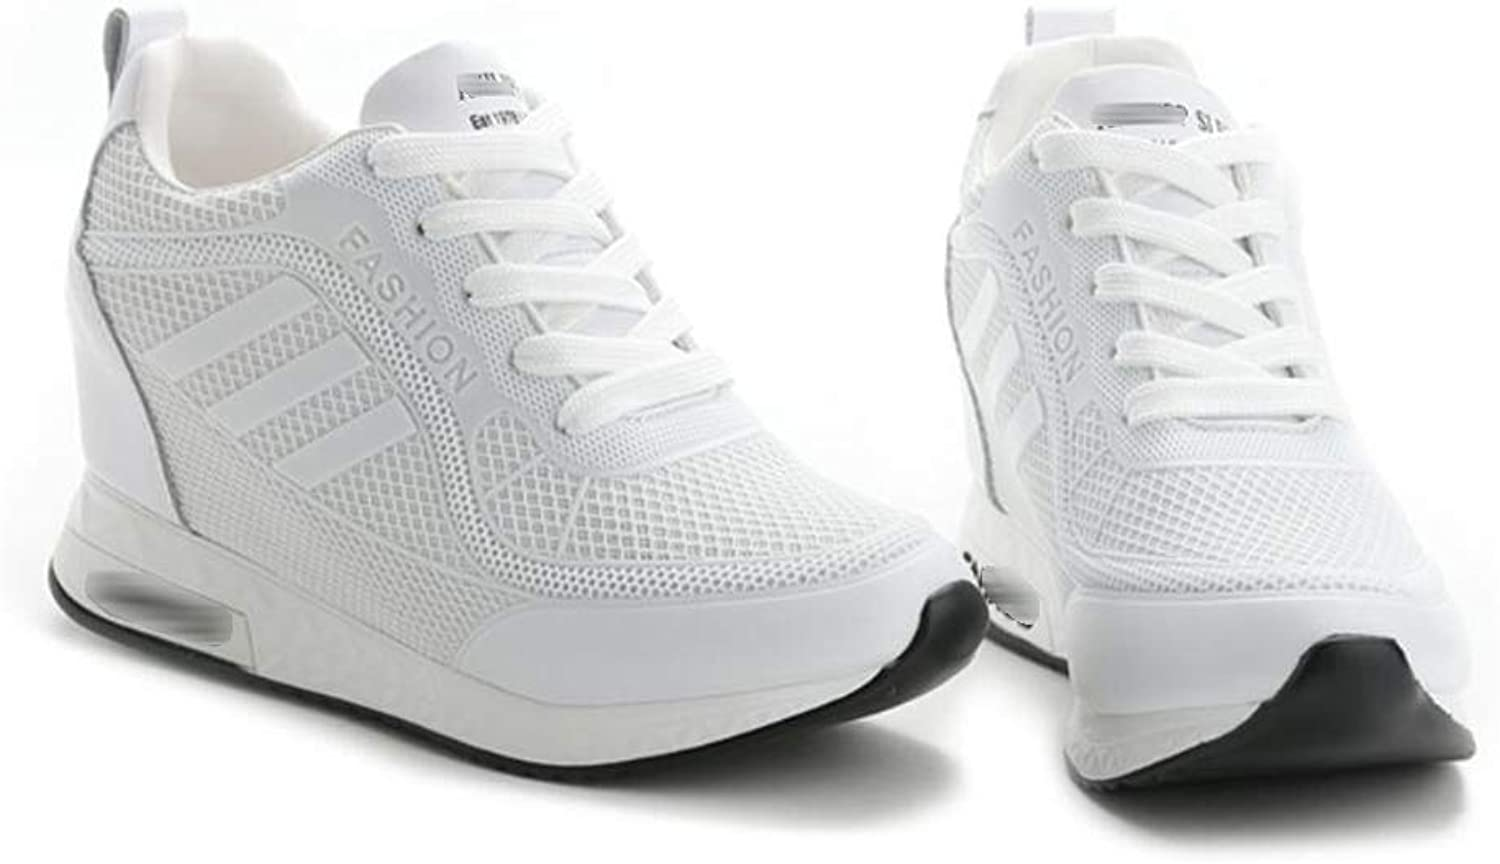 Rcnry Increased Inside, Small White shoes, Female, Pointed, Student, Sneakers